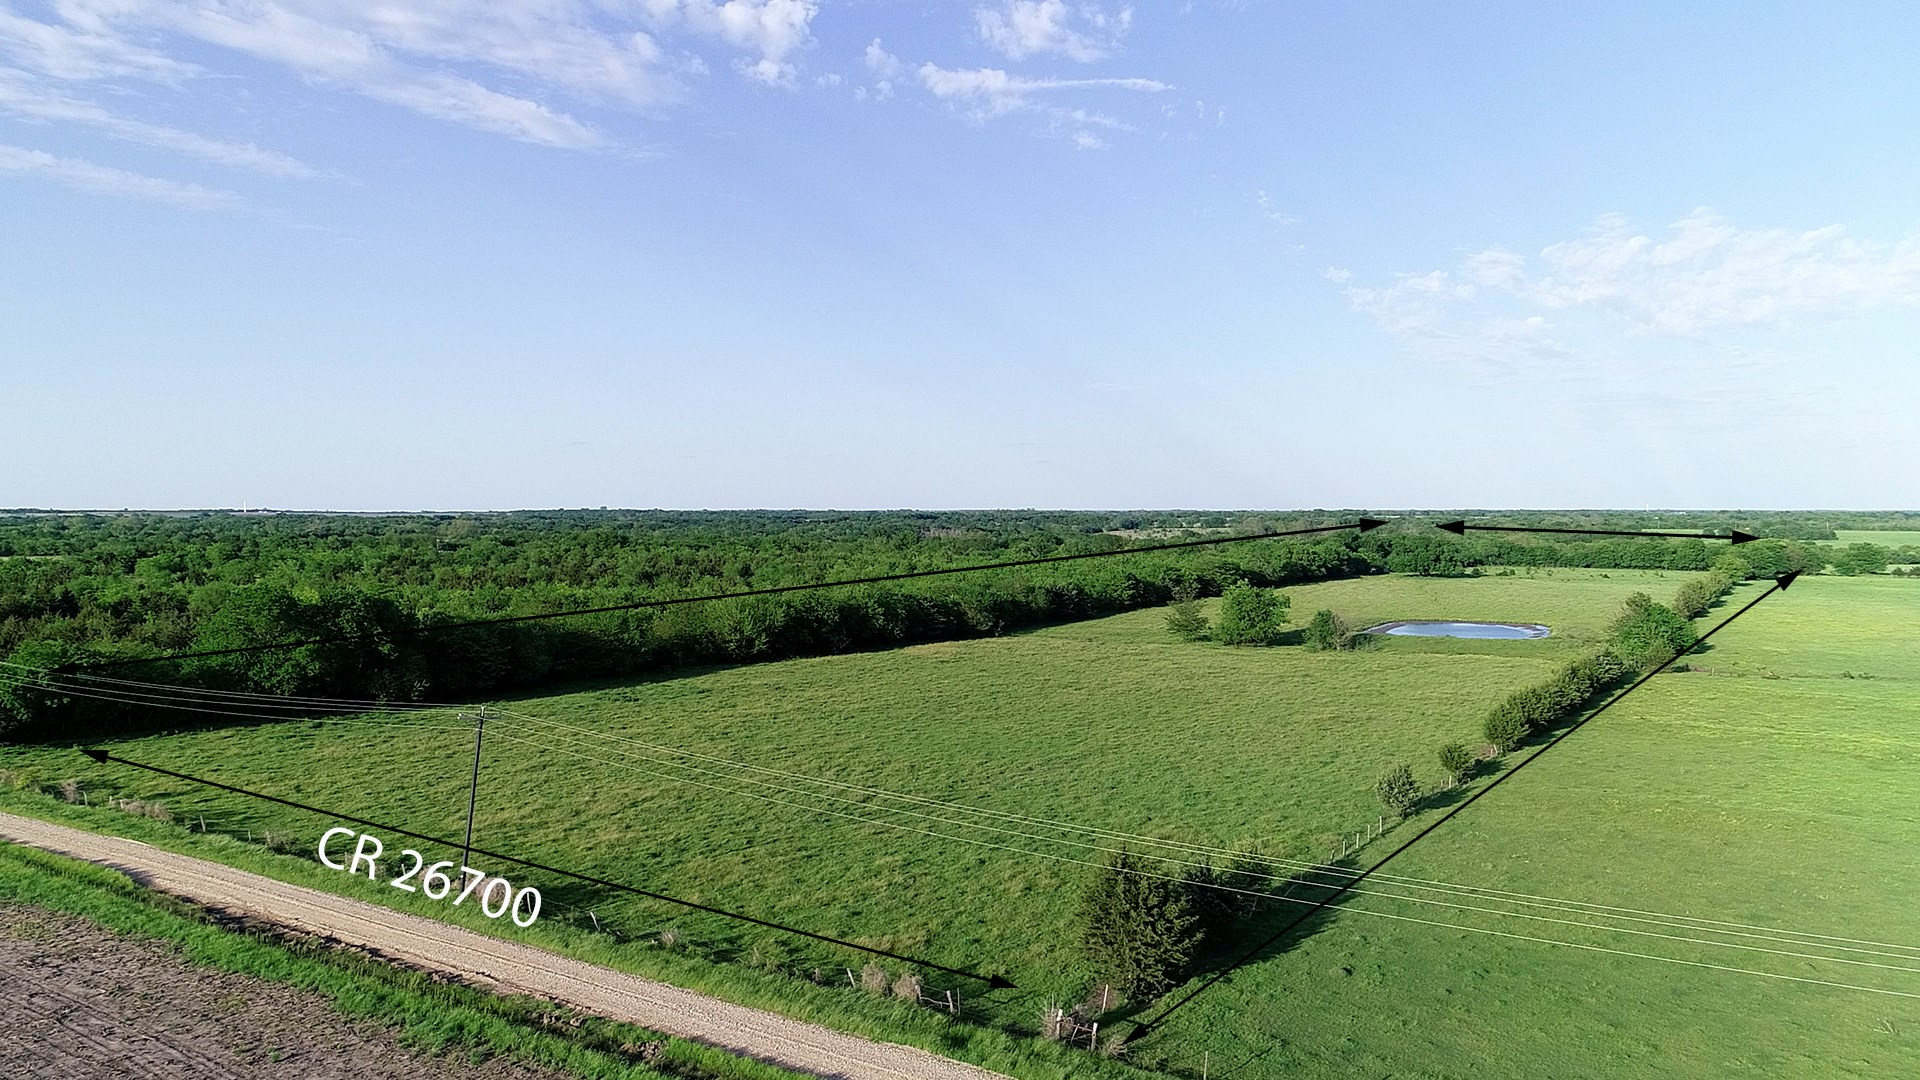 Country Ranch Land For Sale Petty Texas